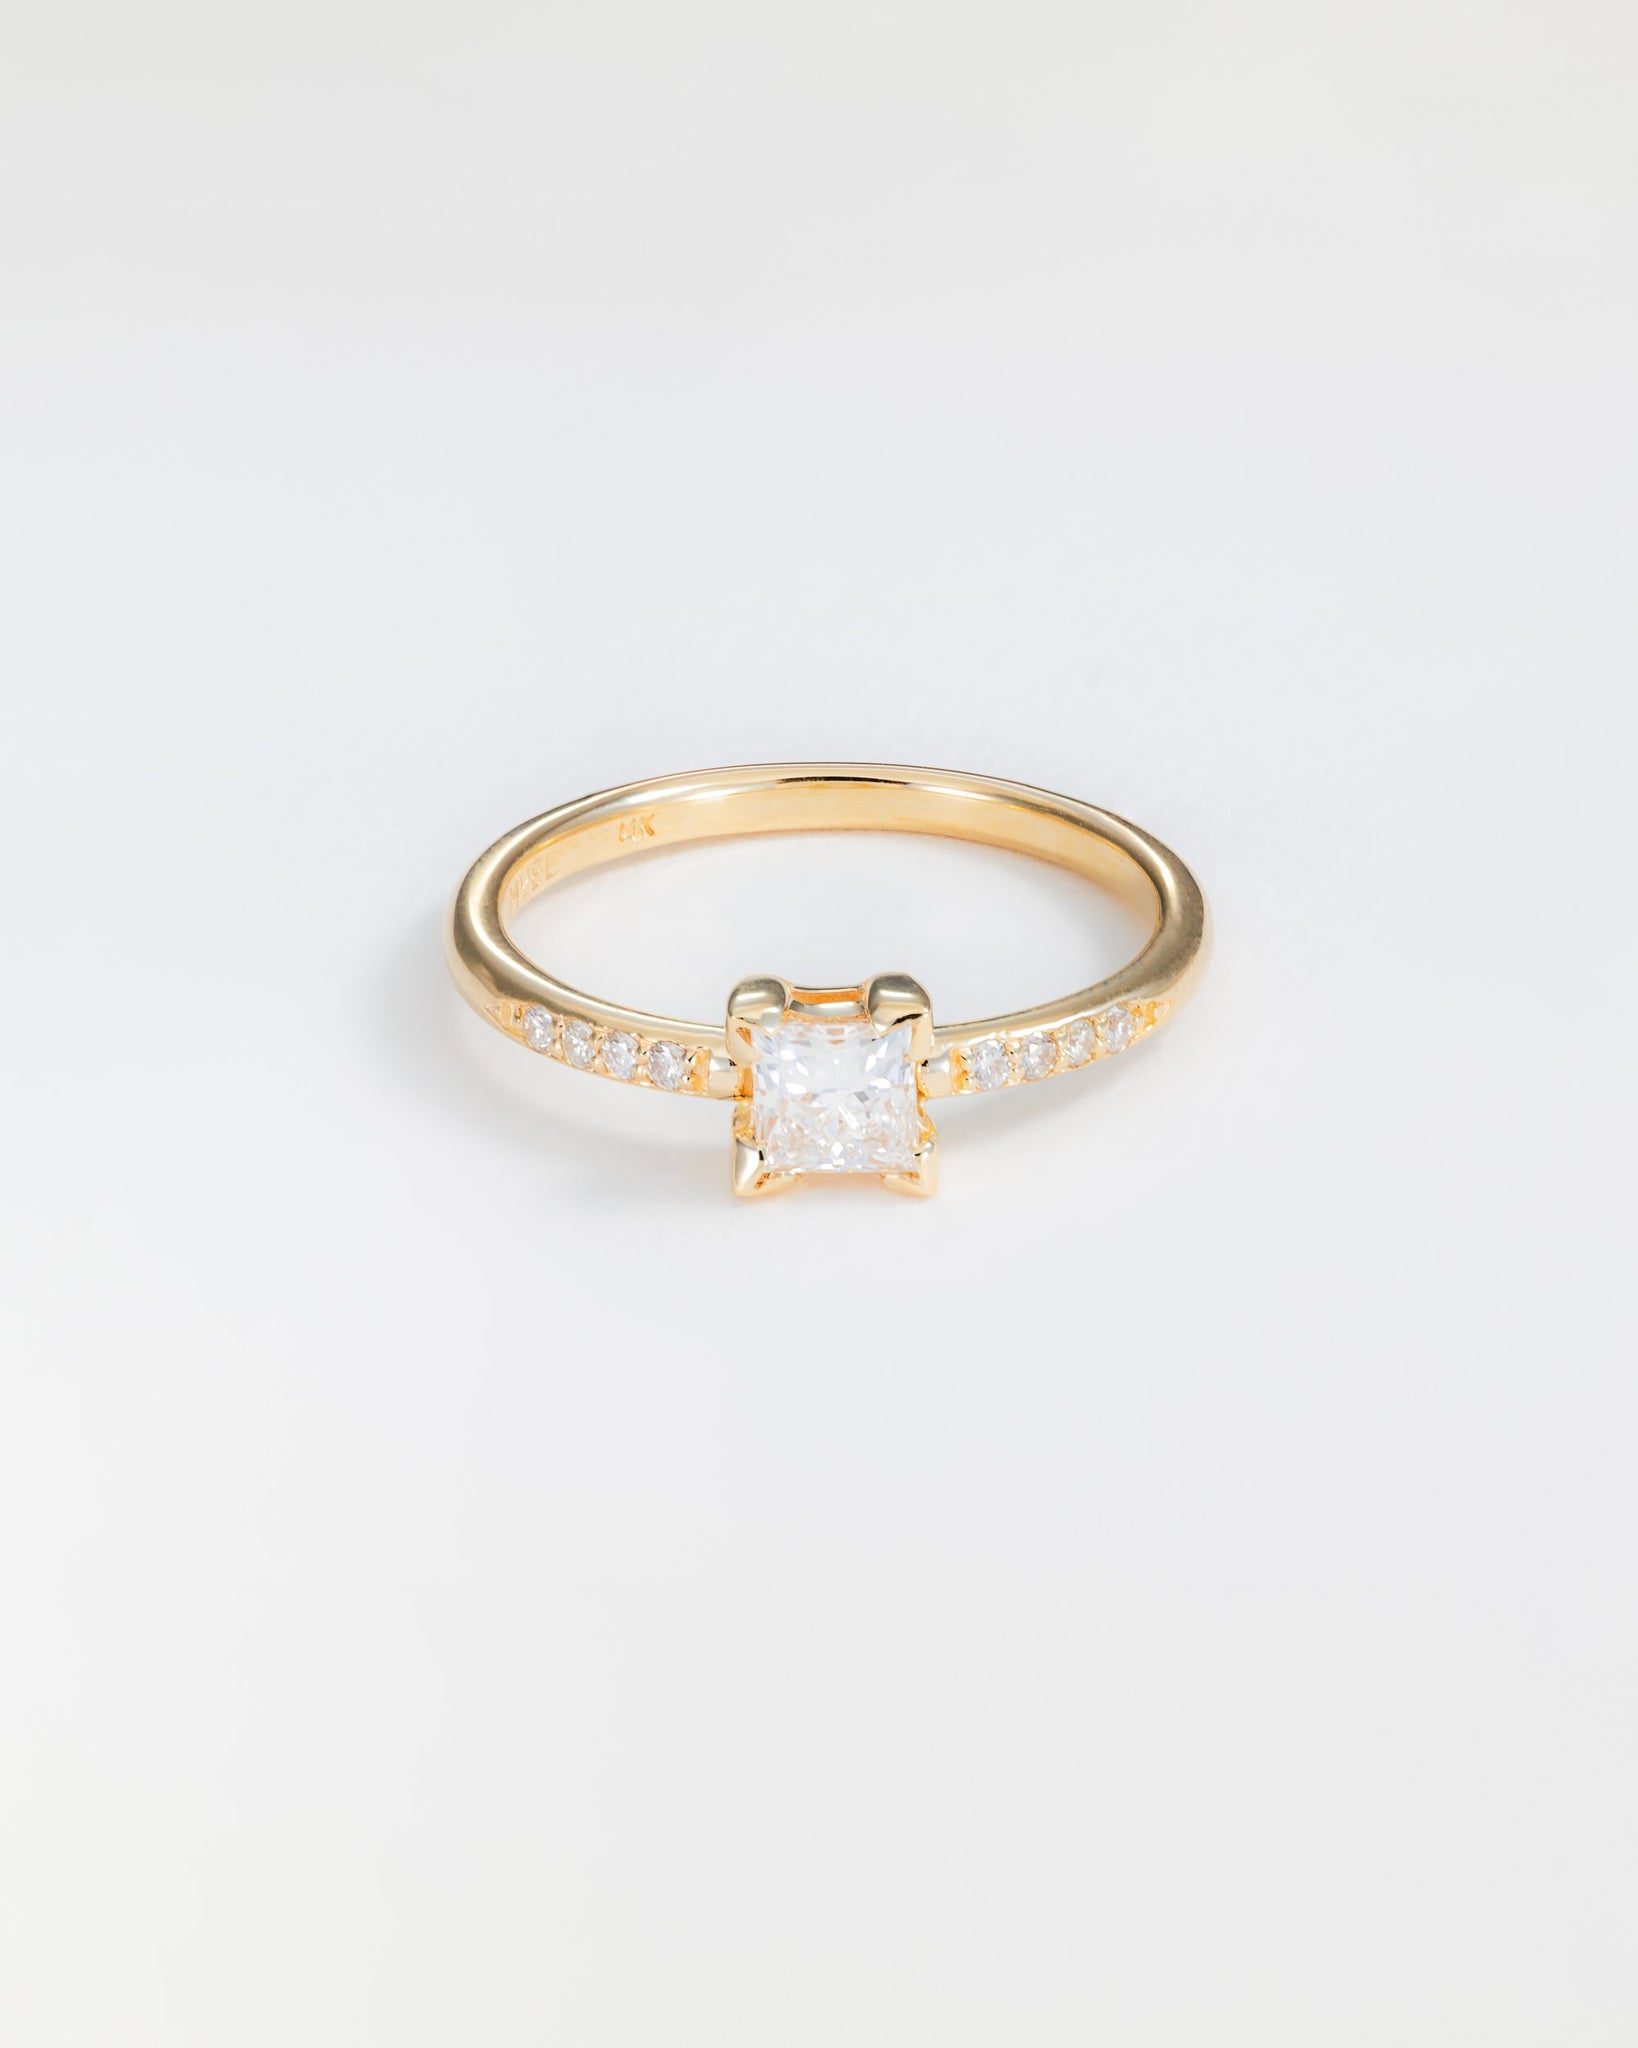 Harmony Ring in Yellow Gold with Diamonds